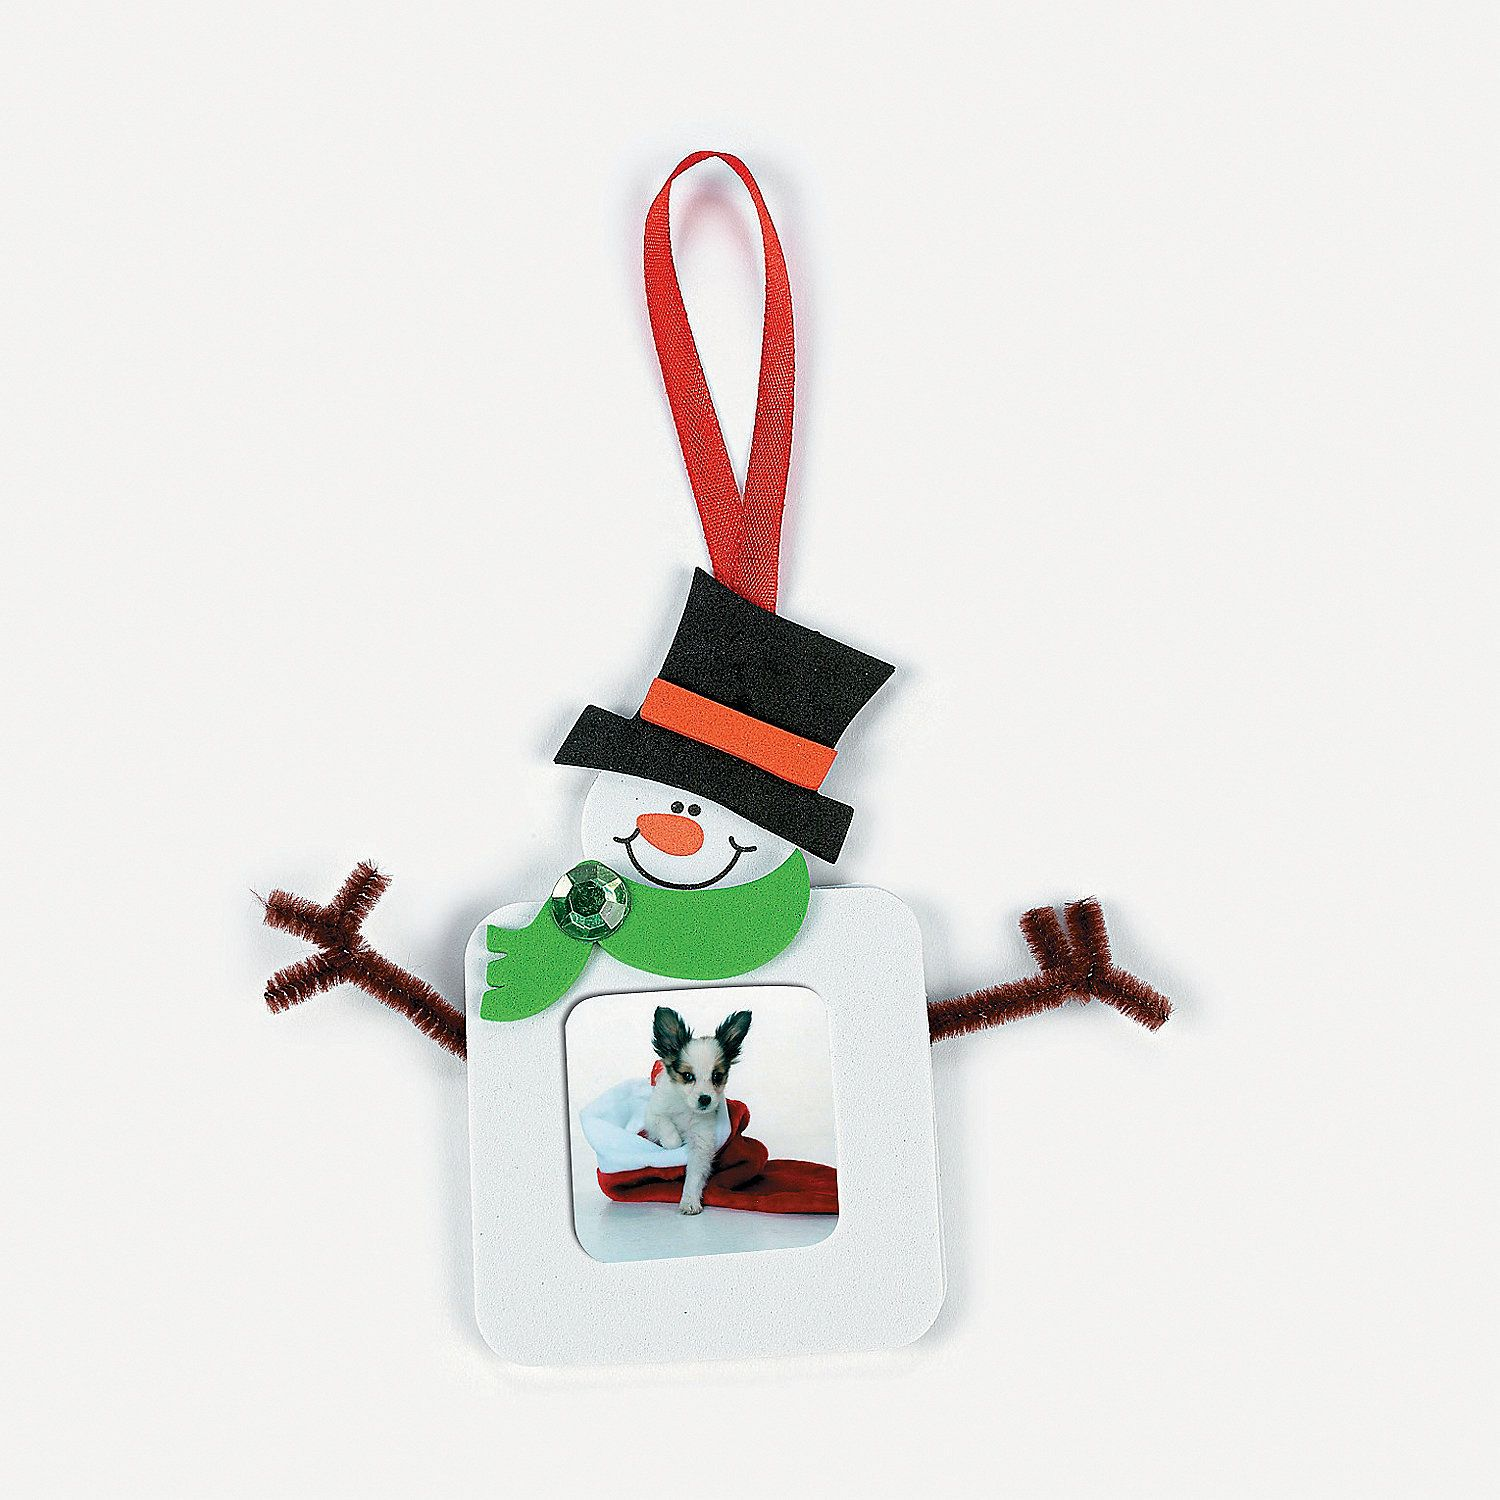 Square Snowman Picture Frame Christmas Ornament Craft Kit Discontinued Christmas Ornament Crafts Picture Frame Christmas Ornaments Ornament Crafts